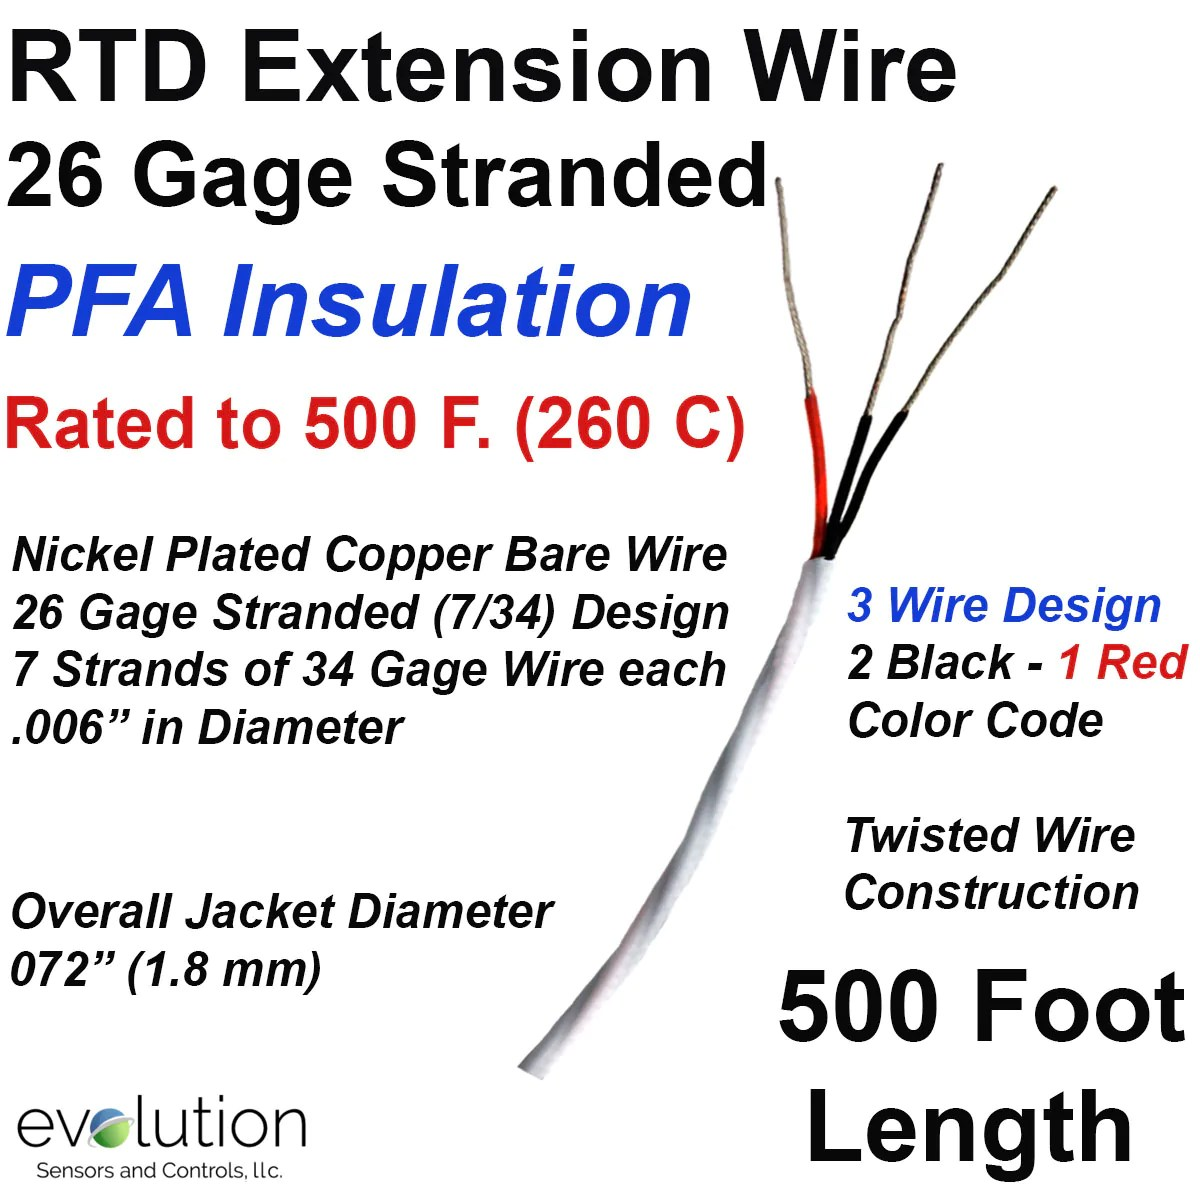 small resolution of rtd extension wire 500 foot length 26 gage stranded 3 wire design type j thermocouple wire color rtd wiring color code